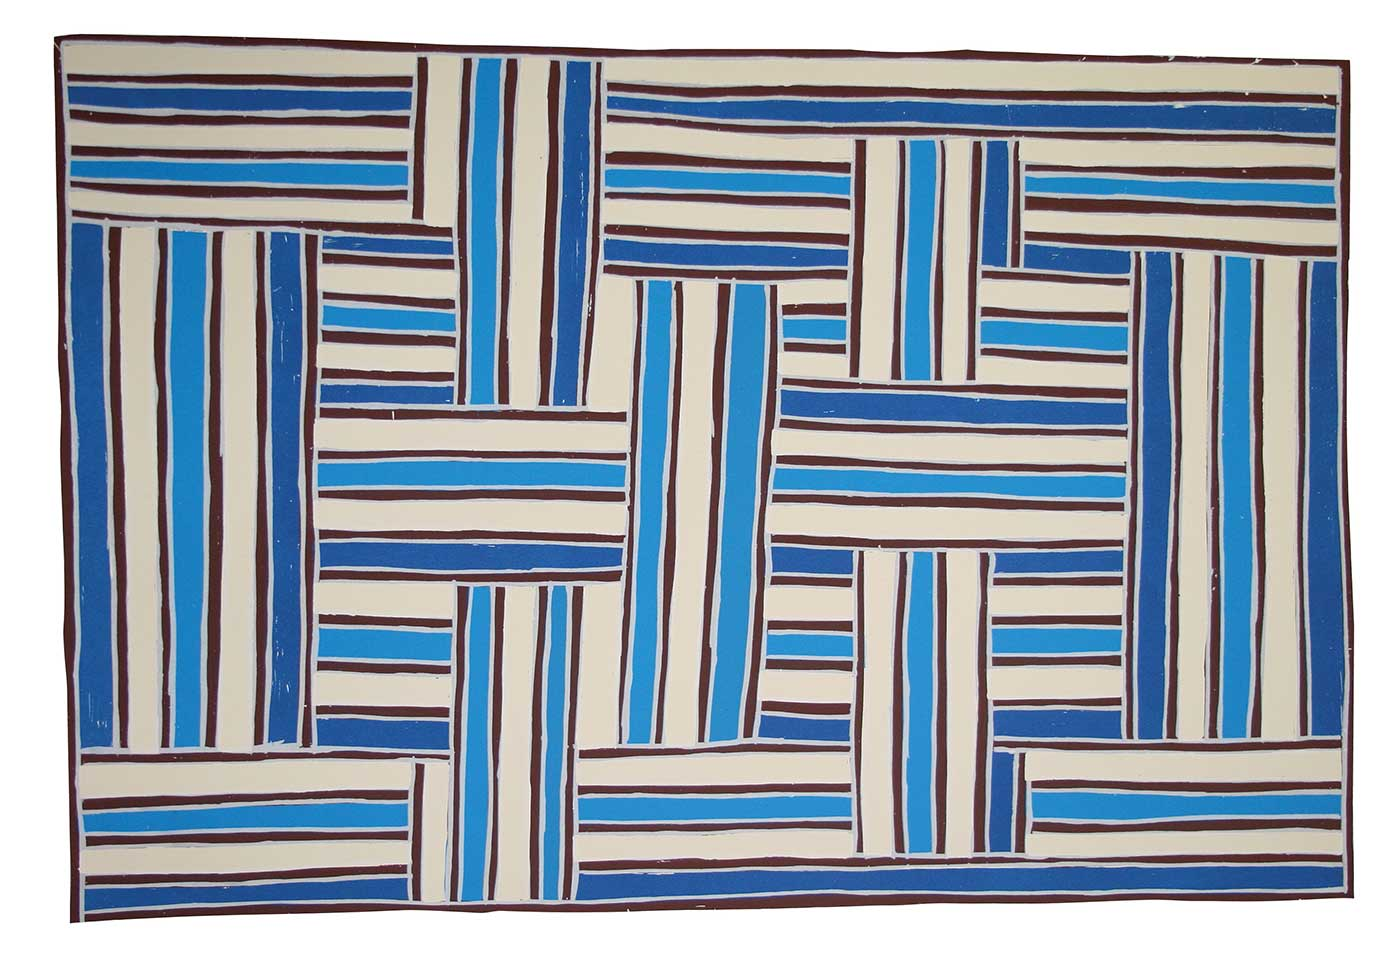 An silkscreen print by an Australian Indigenous aritst. The print features many lines in dark and light blue as well as white. The lines form segments which are placed at right angles to other segments. The print is in landscape format; its horizontal sides are longer than its vertical sides.